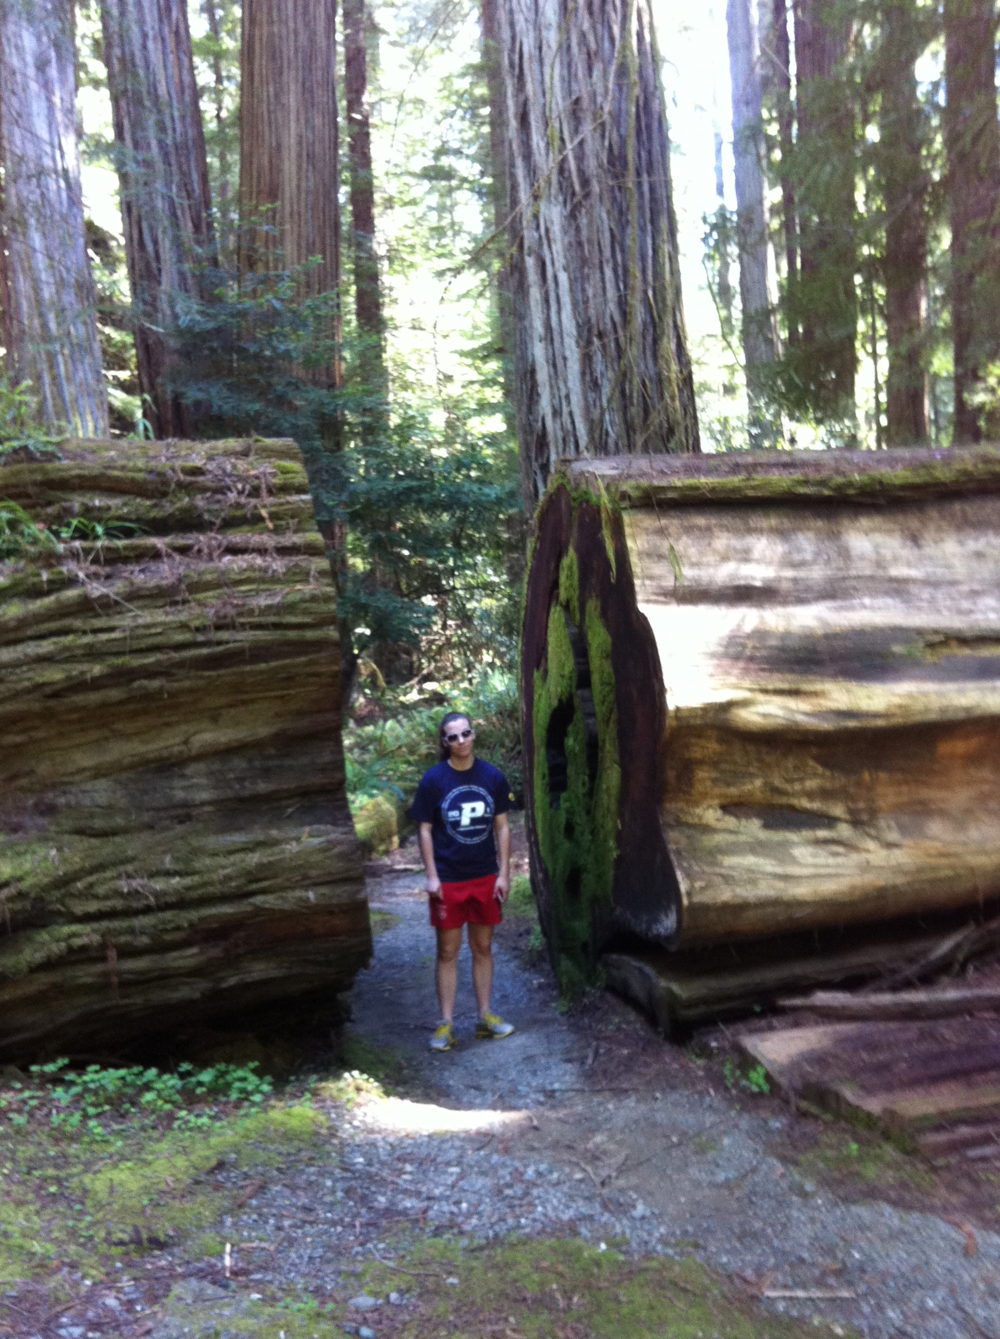 "Trail builders needed a ""breakthrough"" to get past this huge log in Humboldt Redwoods State Park, CA.                 0     0     1     18     97     REI     1     1     114     14.0                            Normal     0                     false     false     false         EN-US     JA     X-NONE                                                                                                                                                                                                                                                                                                                                                                                                                                                                                                                                                                                                                                                                                                                    /* Style Definitions */ table.MsoNormalTable 	{mso-style-name:""Table Normal""; 	mso-tstyle-rowband-size:0; 	mso-tstyle-colband-size:0; 	mso-style-noshow:yes; 	mso-style-priority:99; 	mso-style-parent:""""; 	mso-padding-alt:0in 5.4pt 0in 5.4pt; 	mso-para-margin:0in; 	mso-para-margin-bottom:.0001pt; 	mso-pagination:widow-orphan; 	font-size:12.0pt; 	font-family:Cambria; 	mso-ascii-font-family:Cambria; 	mso-ascii-theme-font:minor-latin; 	mso-hansi-font-family:Cambria; 	mso-hansi-theme-font:minor-latin;}"